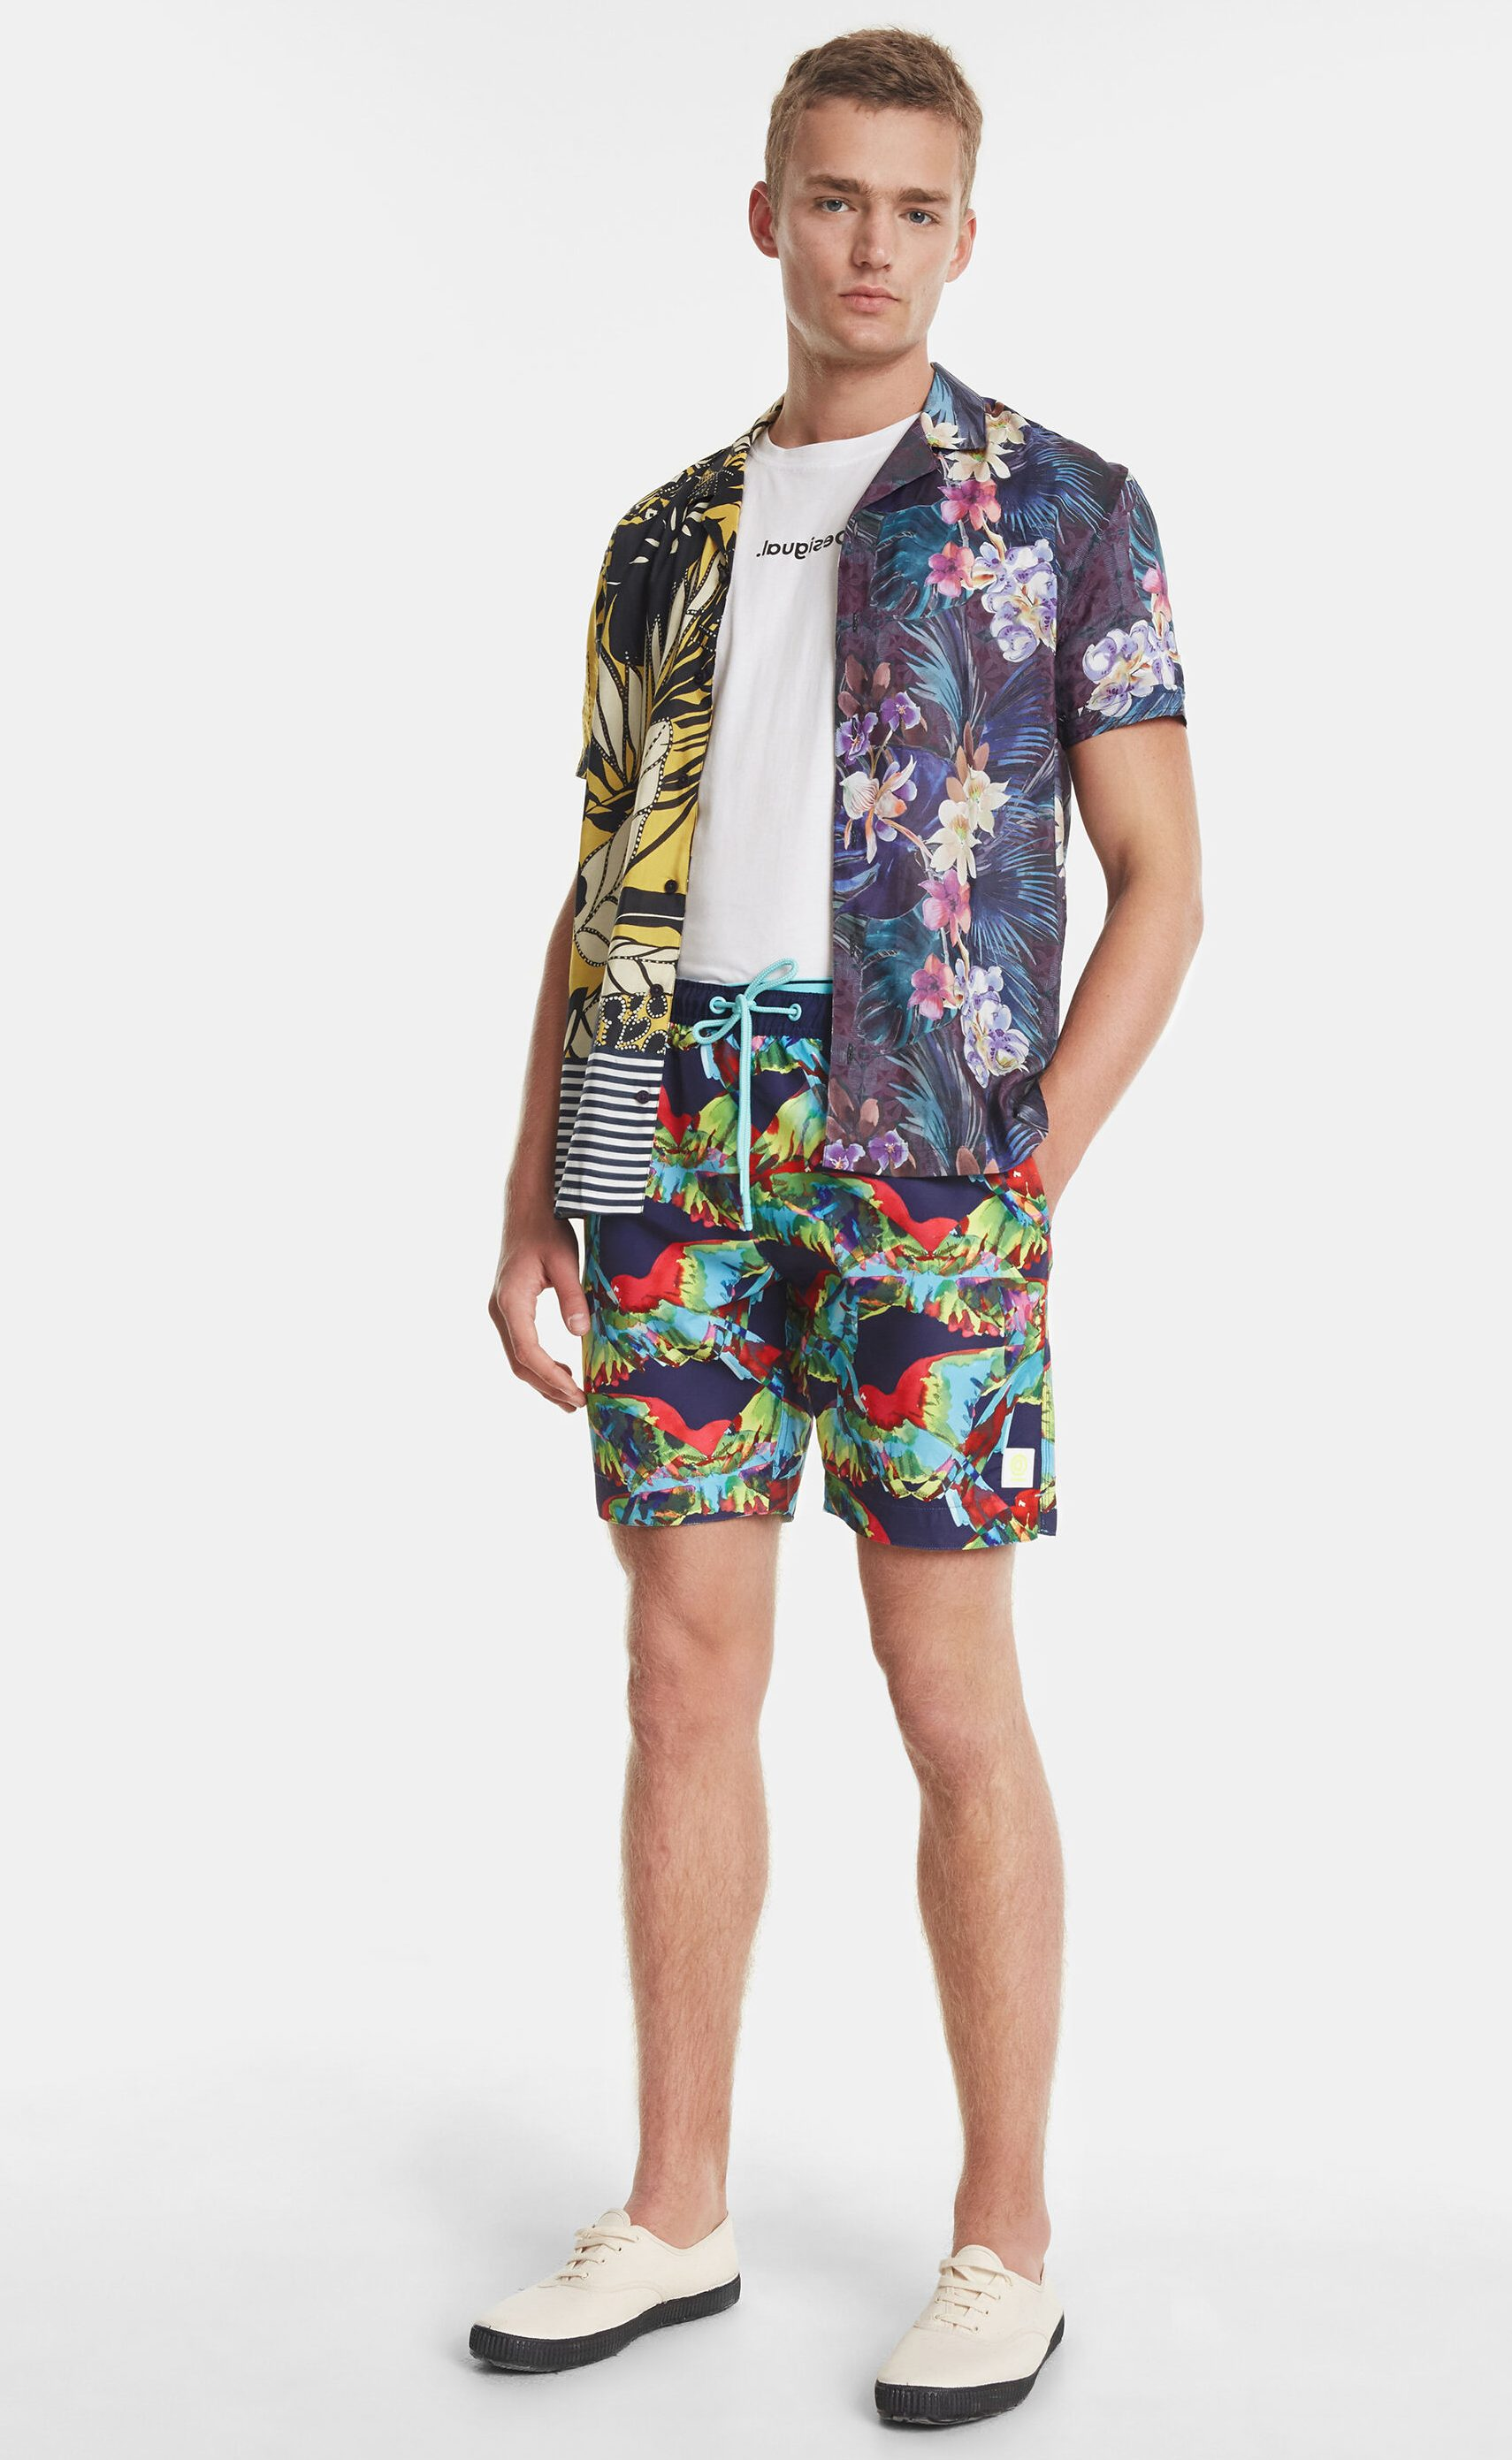 SARA NELL Mens Shorts Floral and Animal African Pattern in Paisley Quick Dry Swim Trunks Beach Board Shorts